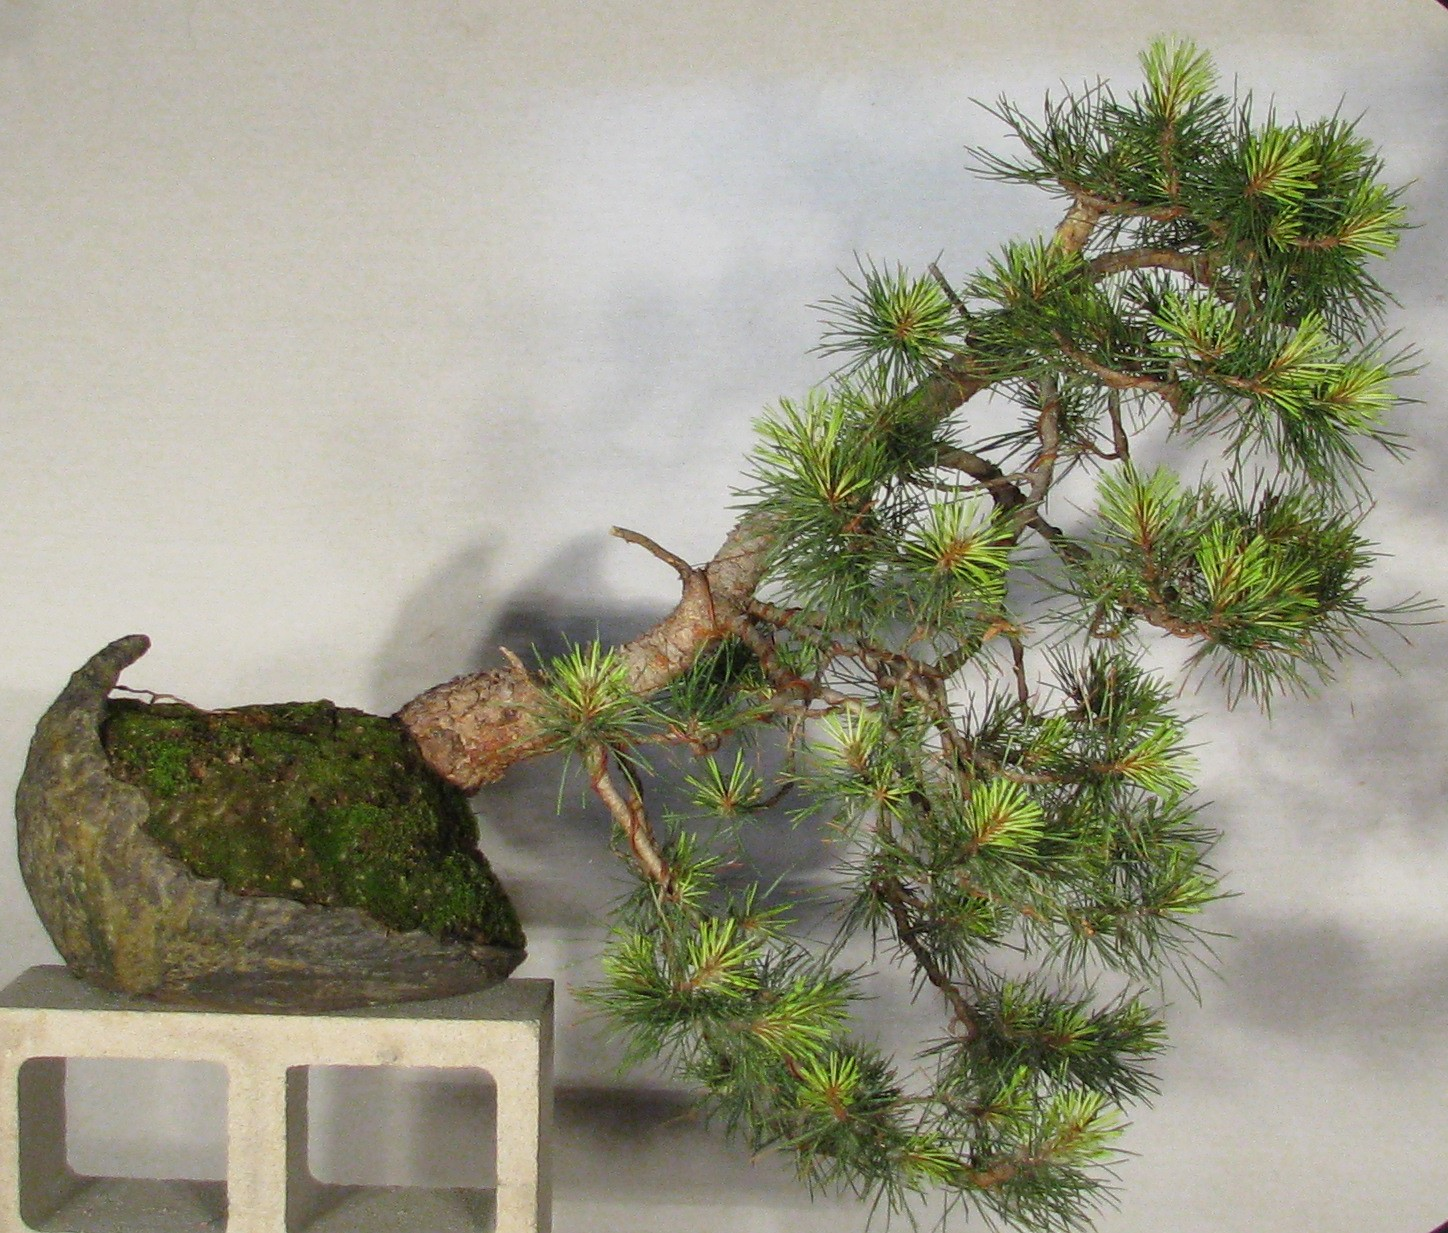 Pinus Contorta Taylors Sunburst Bonsai Colorado Rocky Mountain Tree Wiring Video One Year I Saw This Really Neat Landscape Pine Growing At Pauline Gardens Nursery In Denver The Spring Ends Of Branches Were